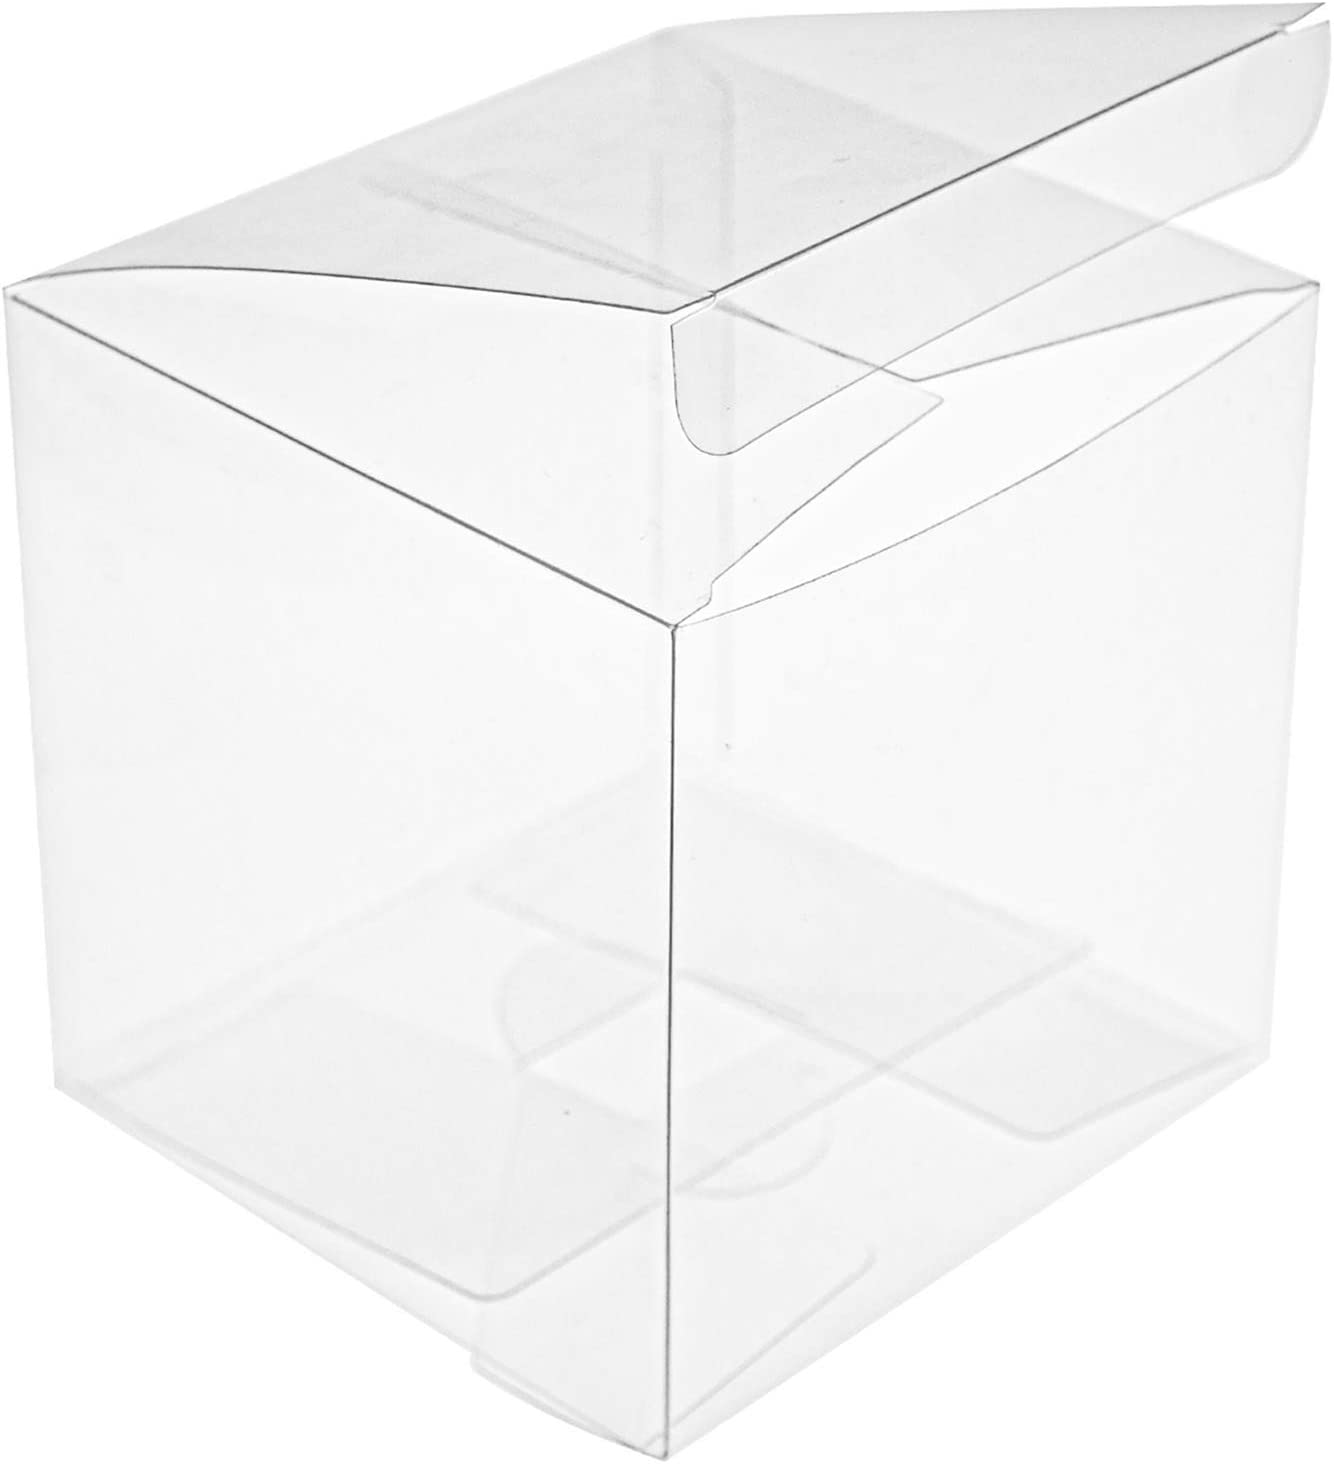 Yesland 35 PCS Candy Apple Box - 4 x 4 x 4 Inches - Clear Plastic Gift Boxes for Caramel Apples, Ornament, Treats & Party Favors for Wedding, Birthday Party or DIY Design - No Hole in the Top